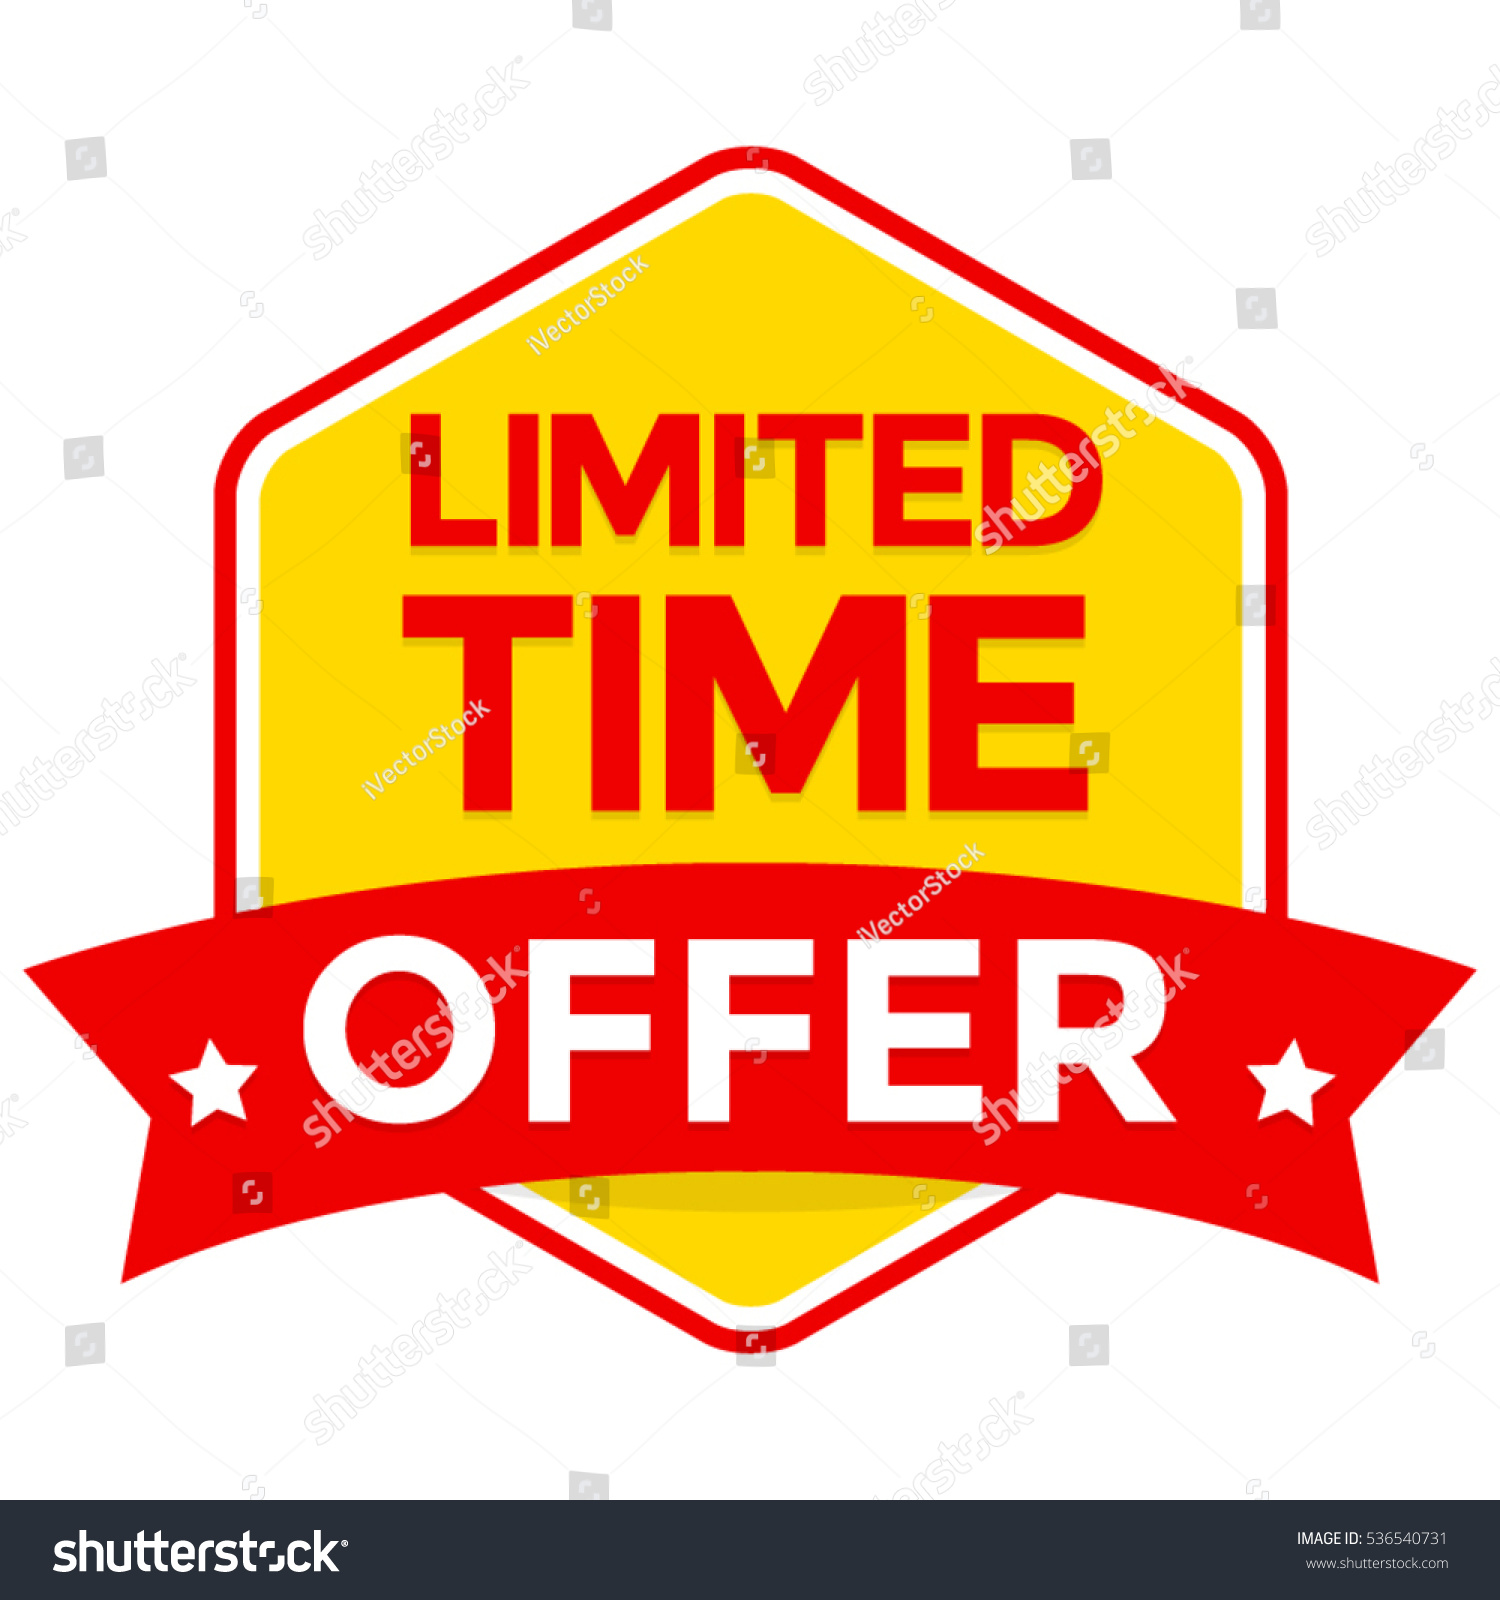 Offer: Limited Time Offer Badge Vector Flat Stock Vector